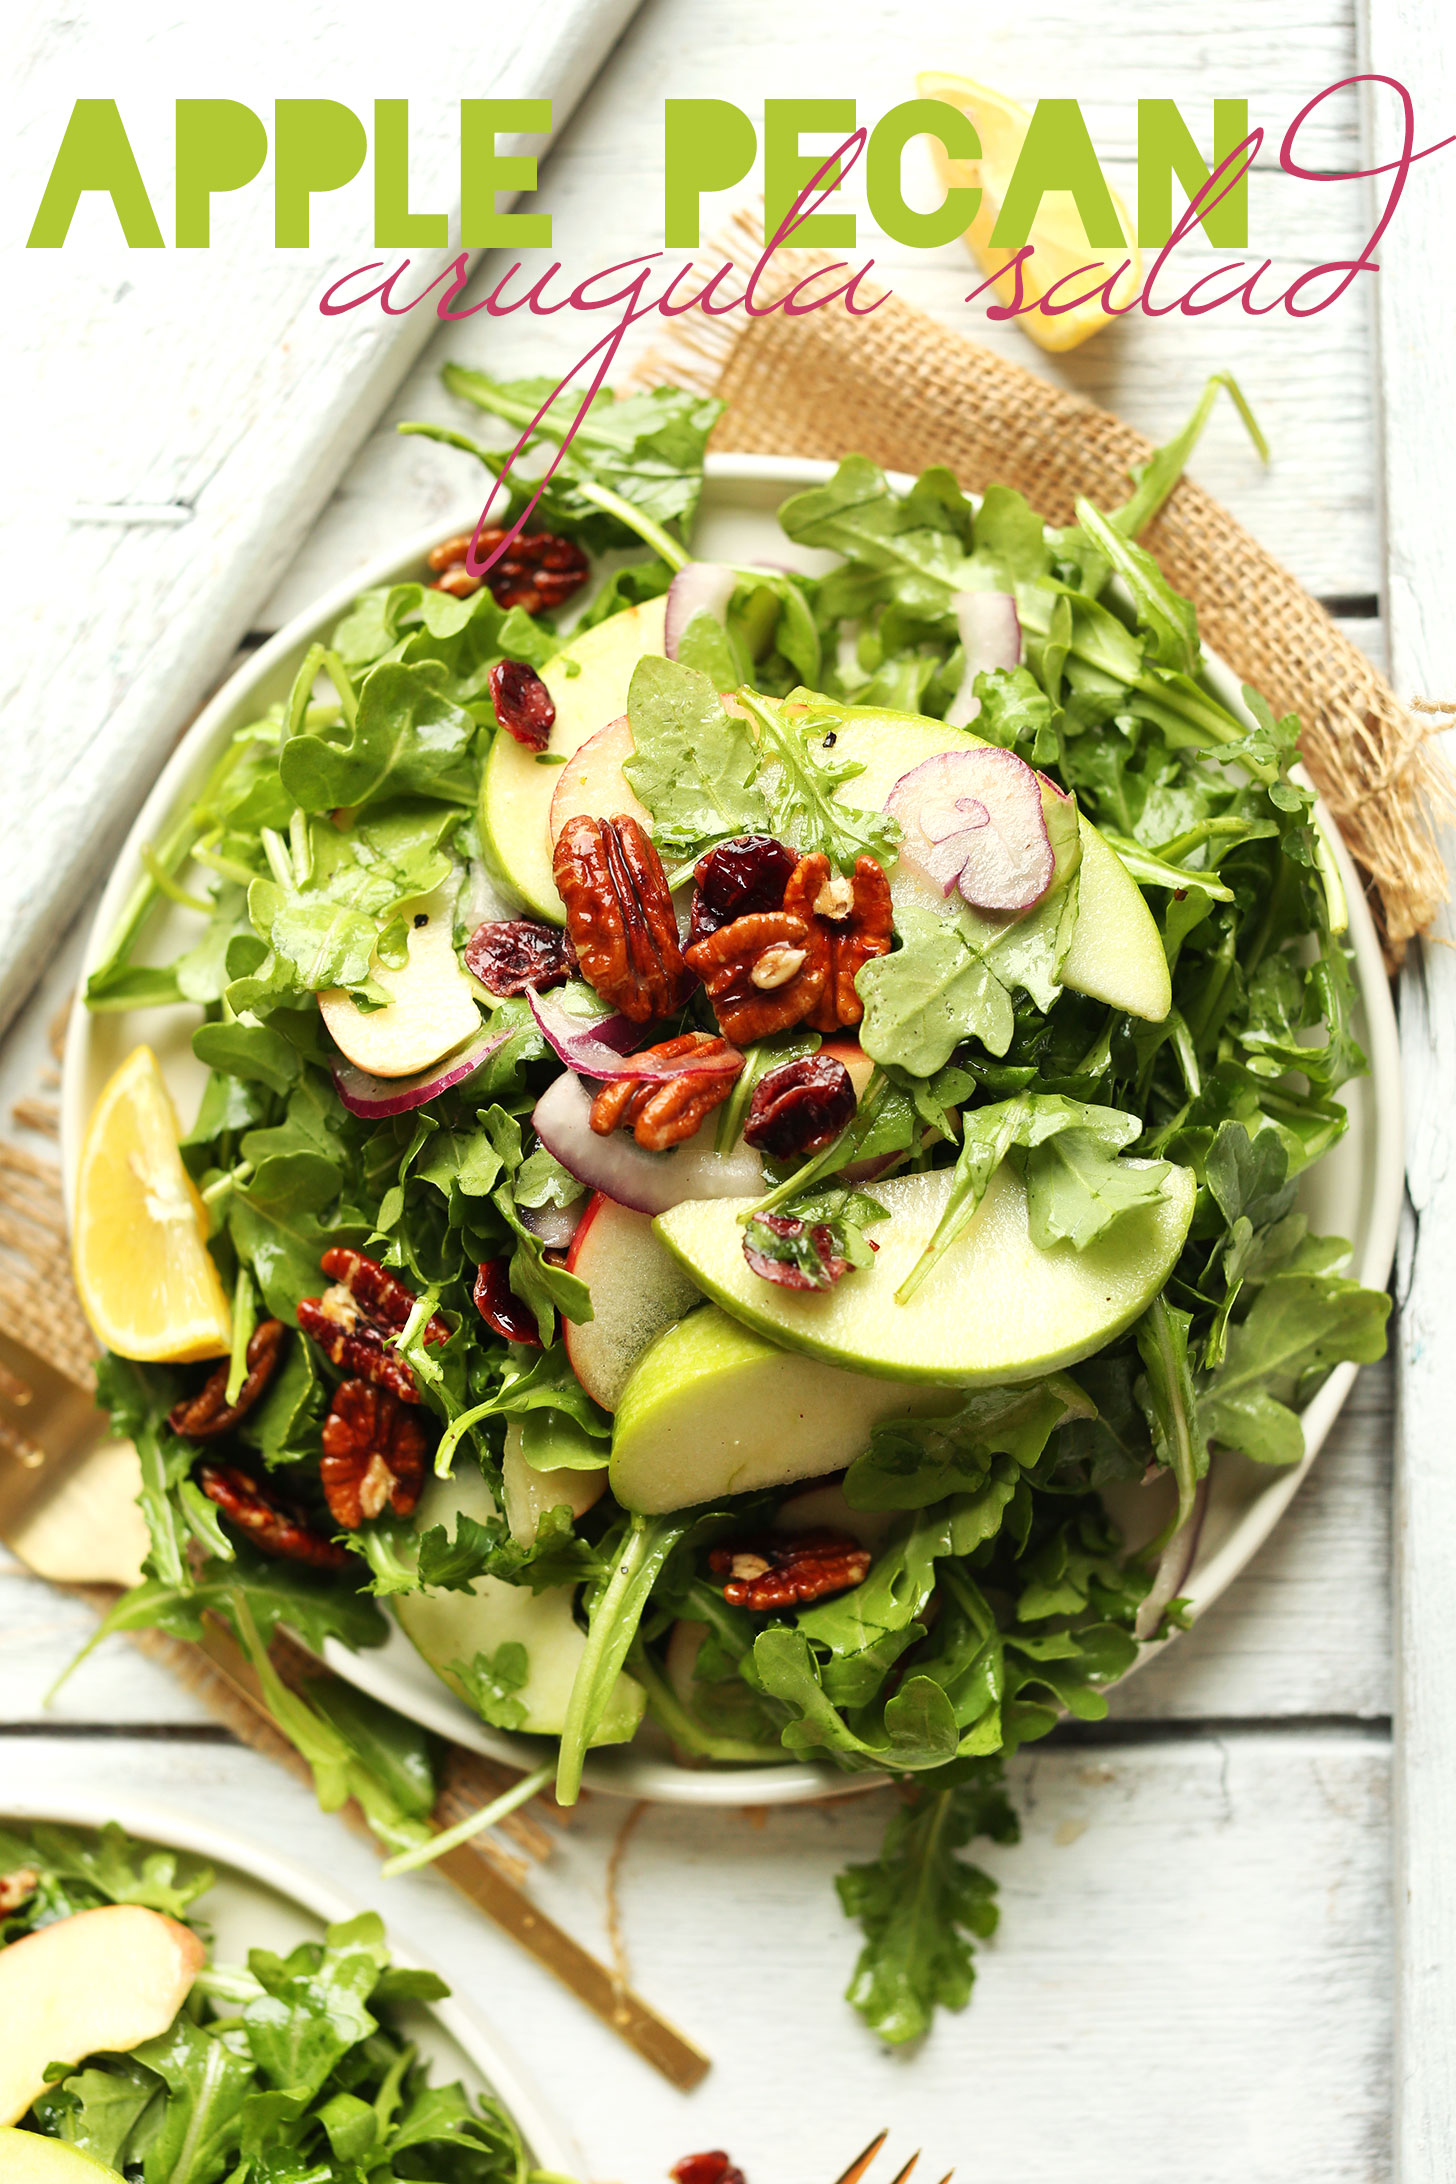 Hearty fall salad recipe made with apples, arugula, pecans, radish, and lemon vinaigrette